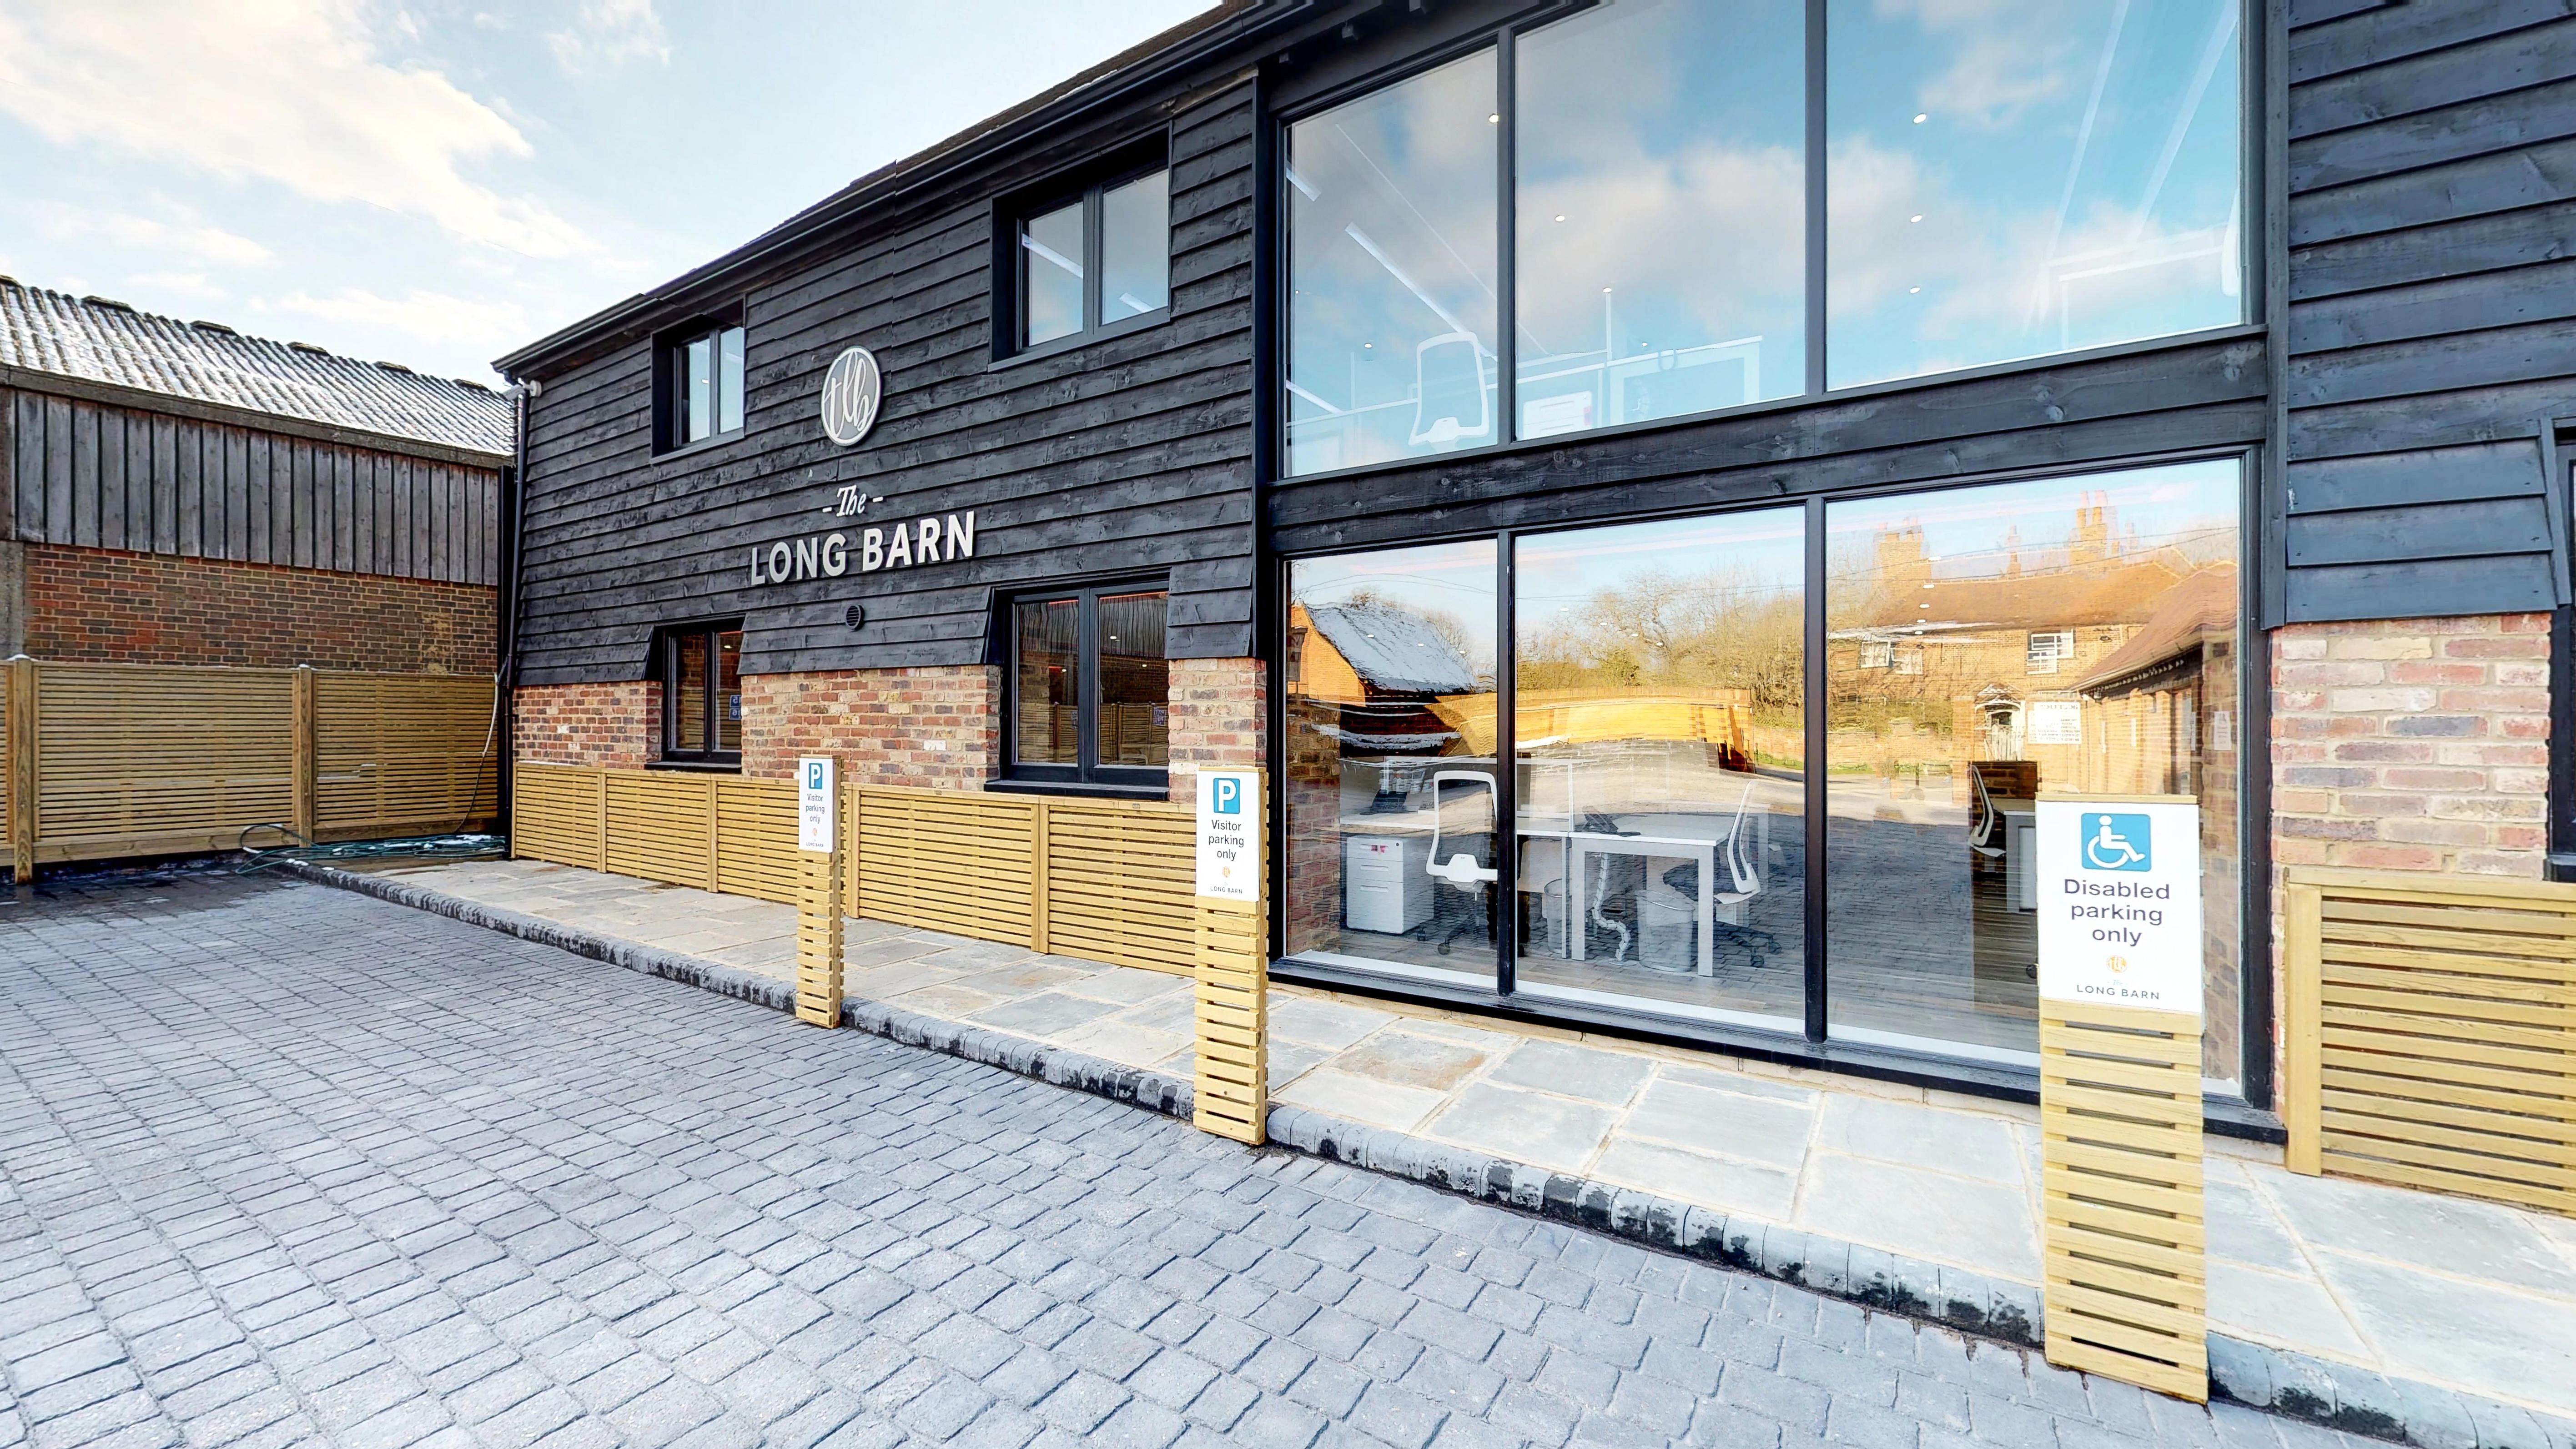 Accrue Workplaces - The Long Barn - Cobham Park Road, KT11 - Leatherhead (private, co-working, virtual)